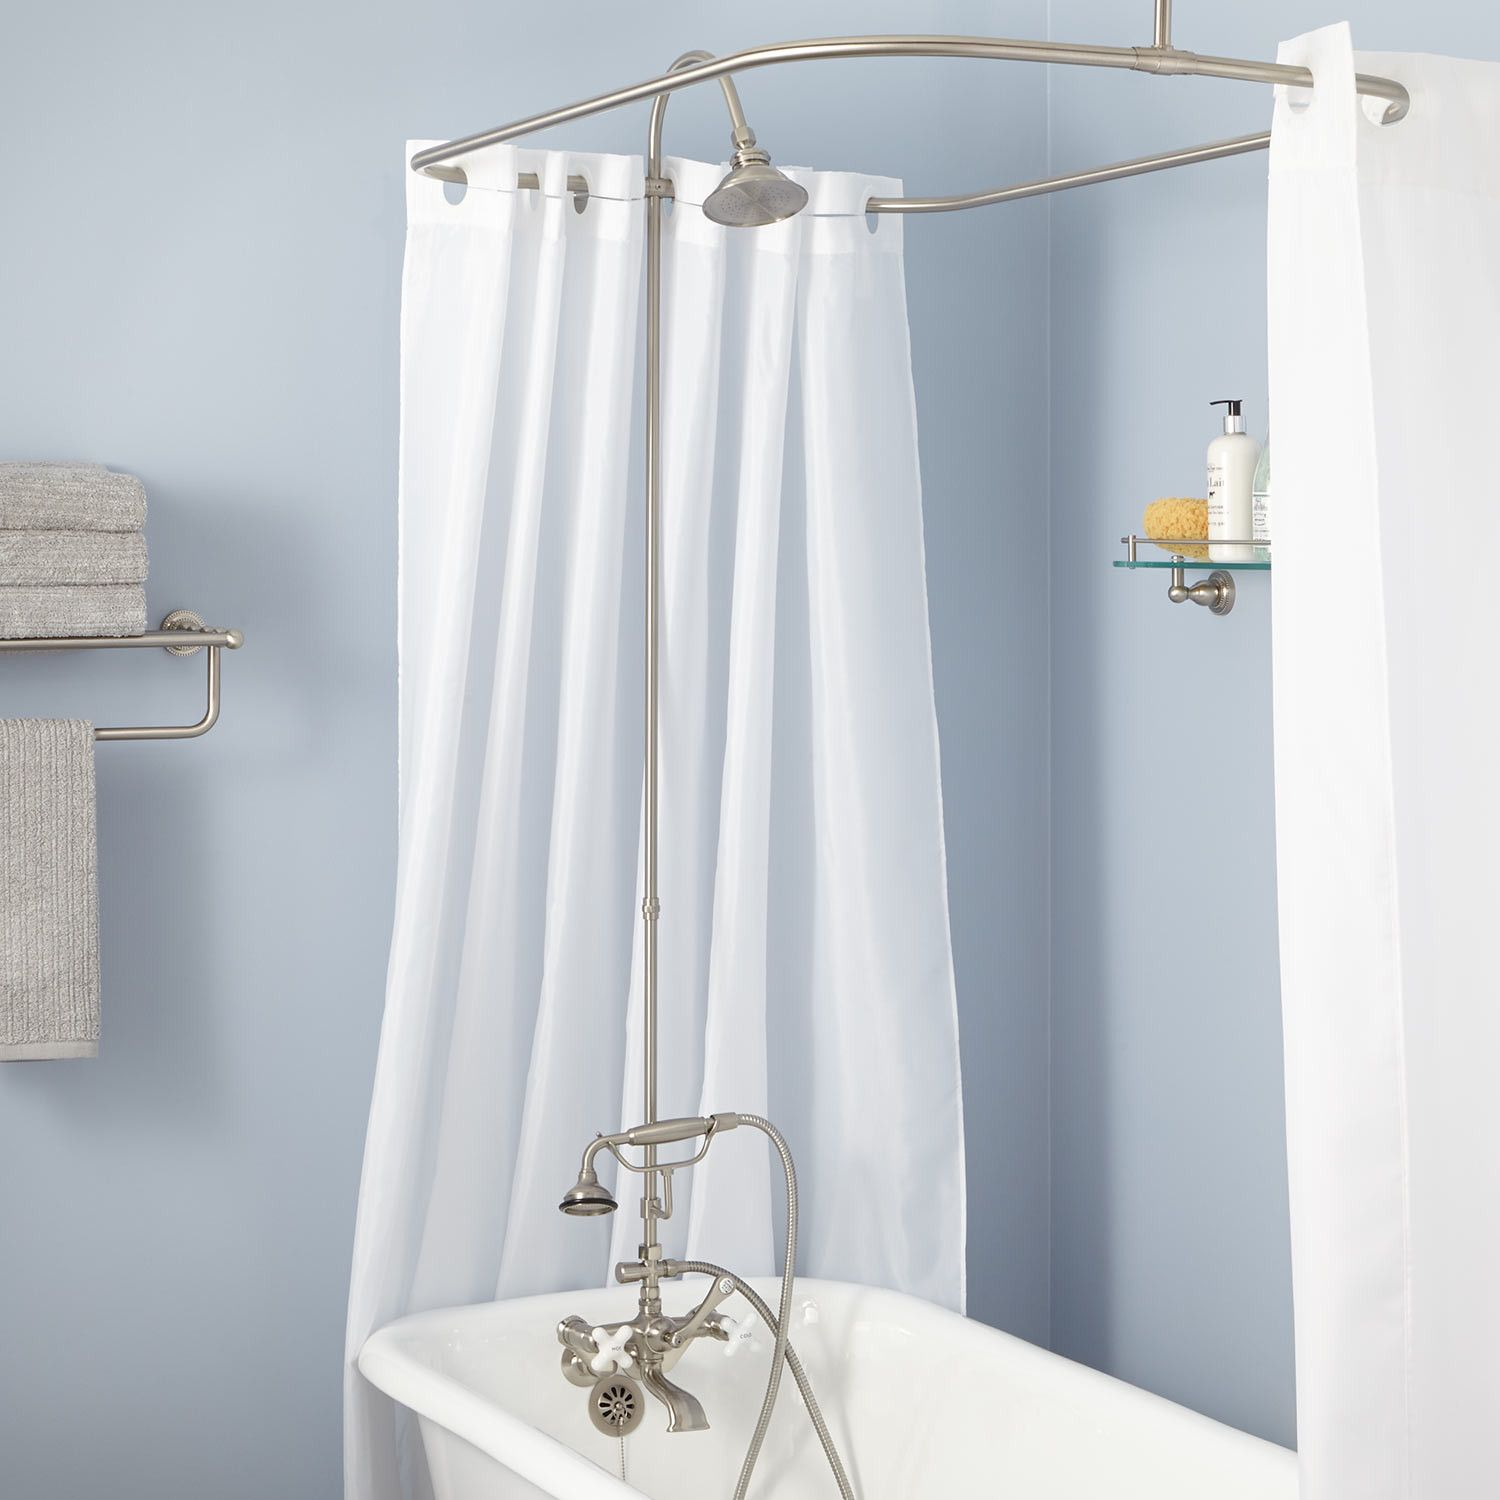 English Shower Conversion Kit With Hand Shower Brass Shower Head